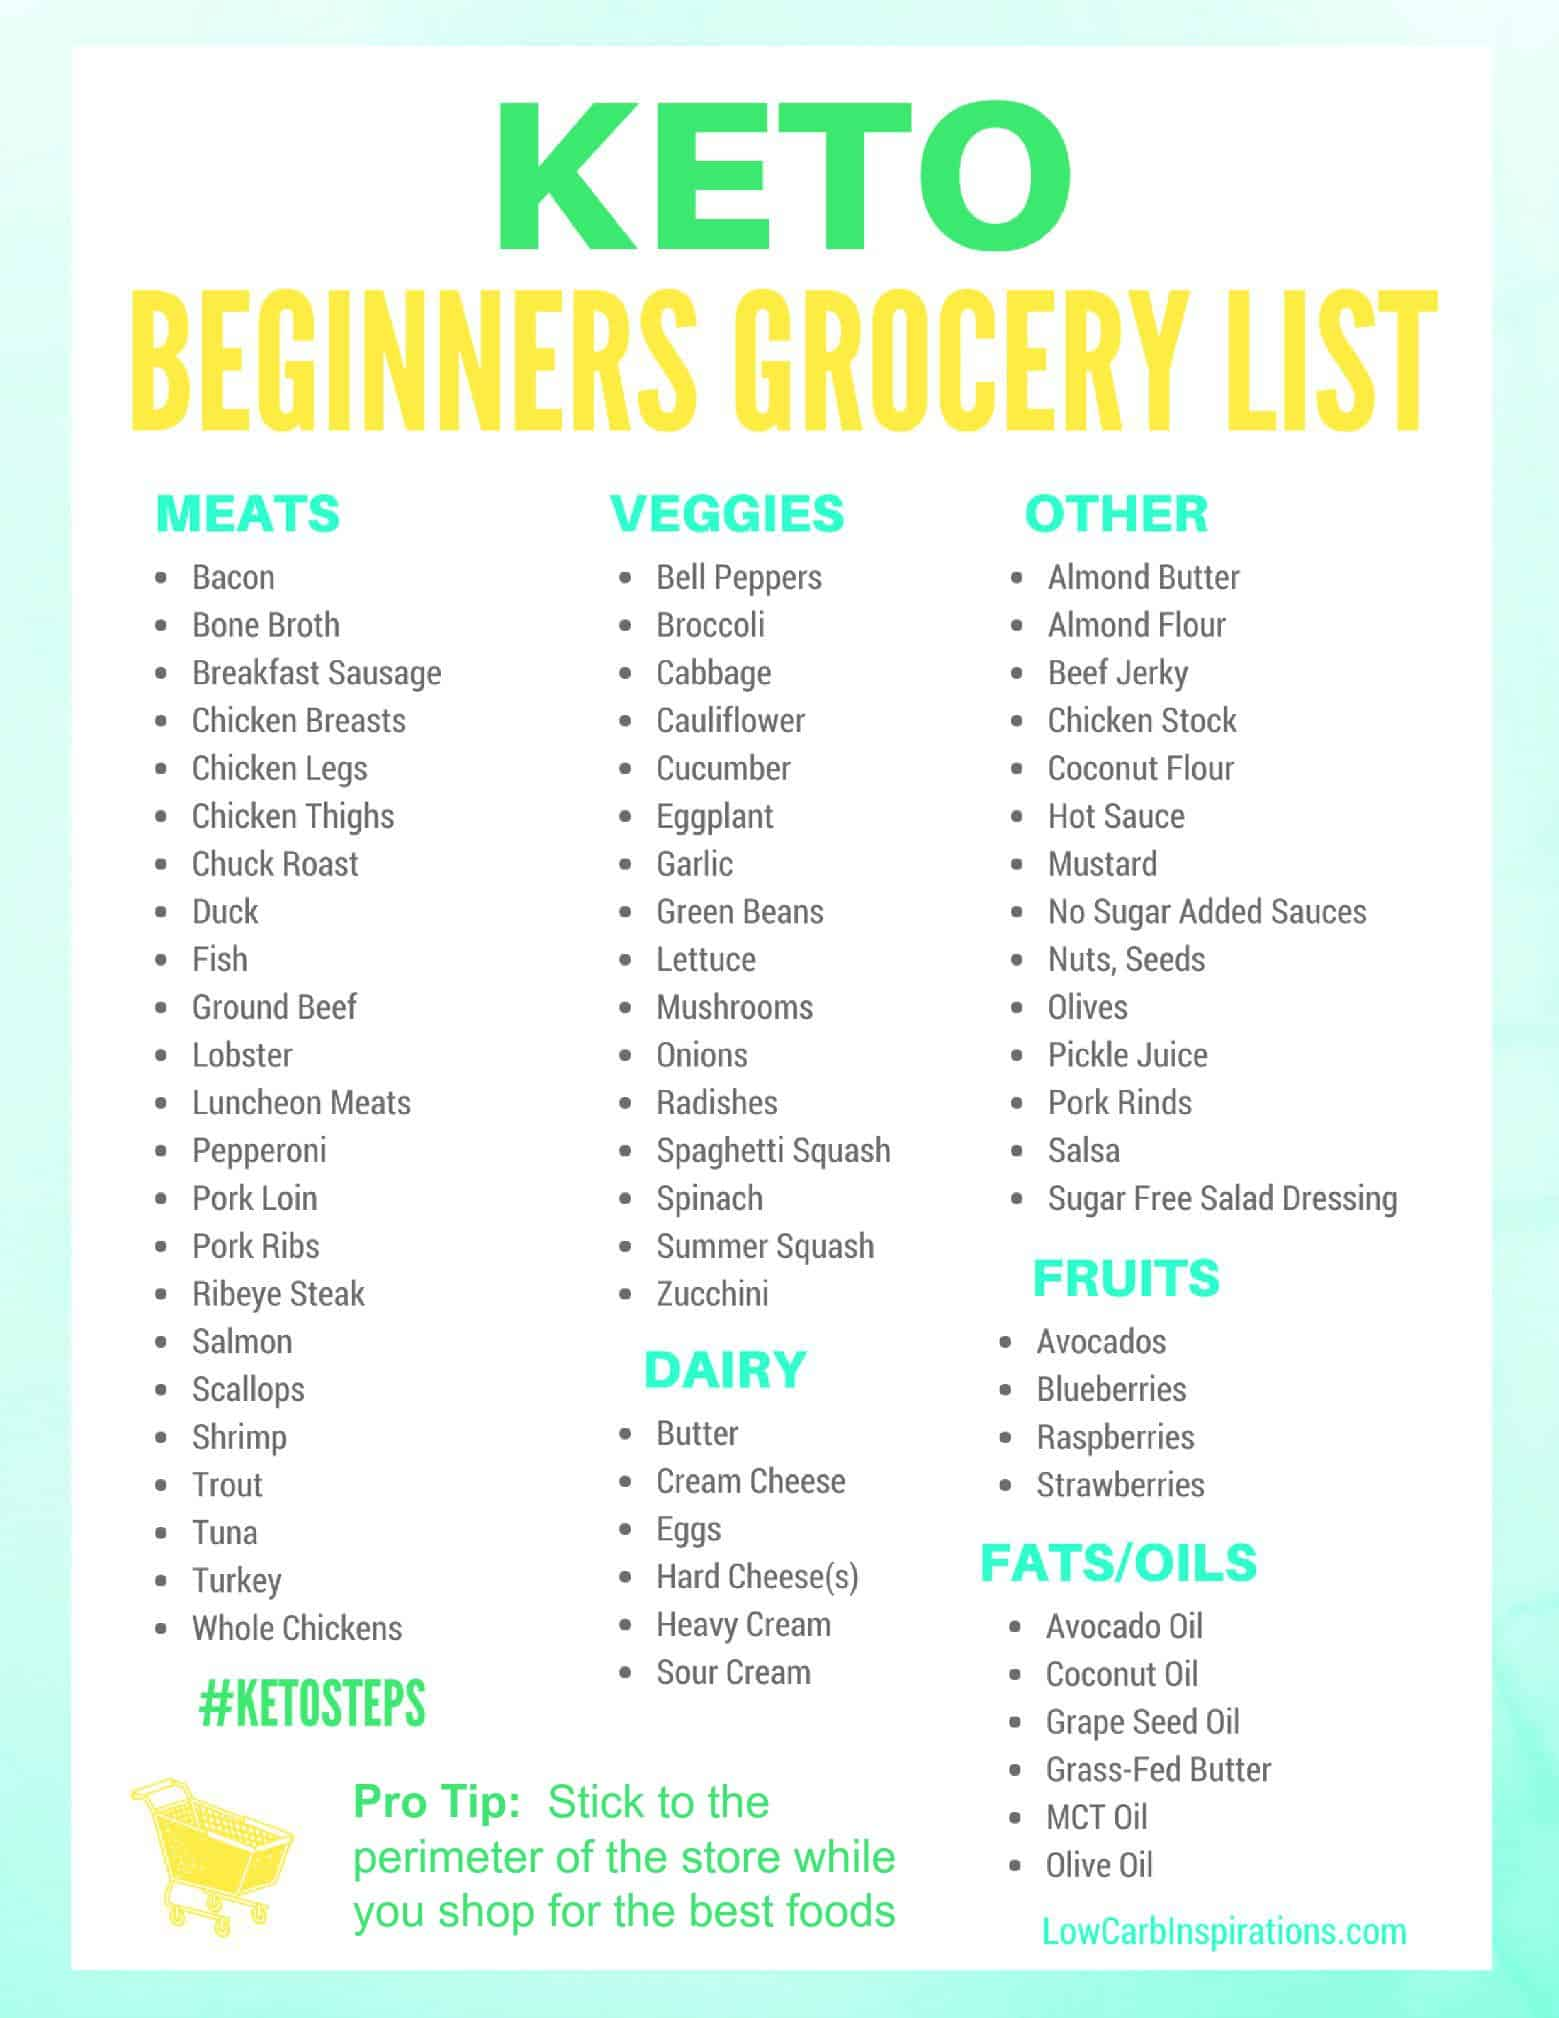 Keto Grocery List For Beginners